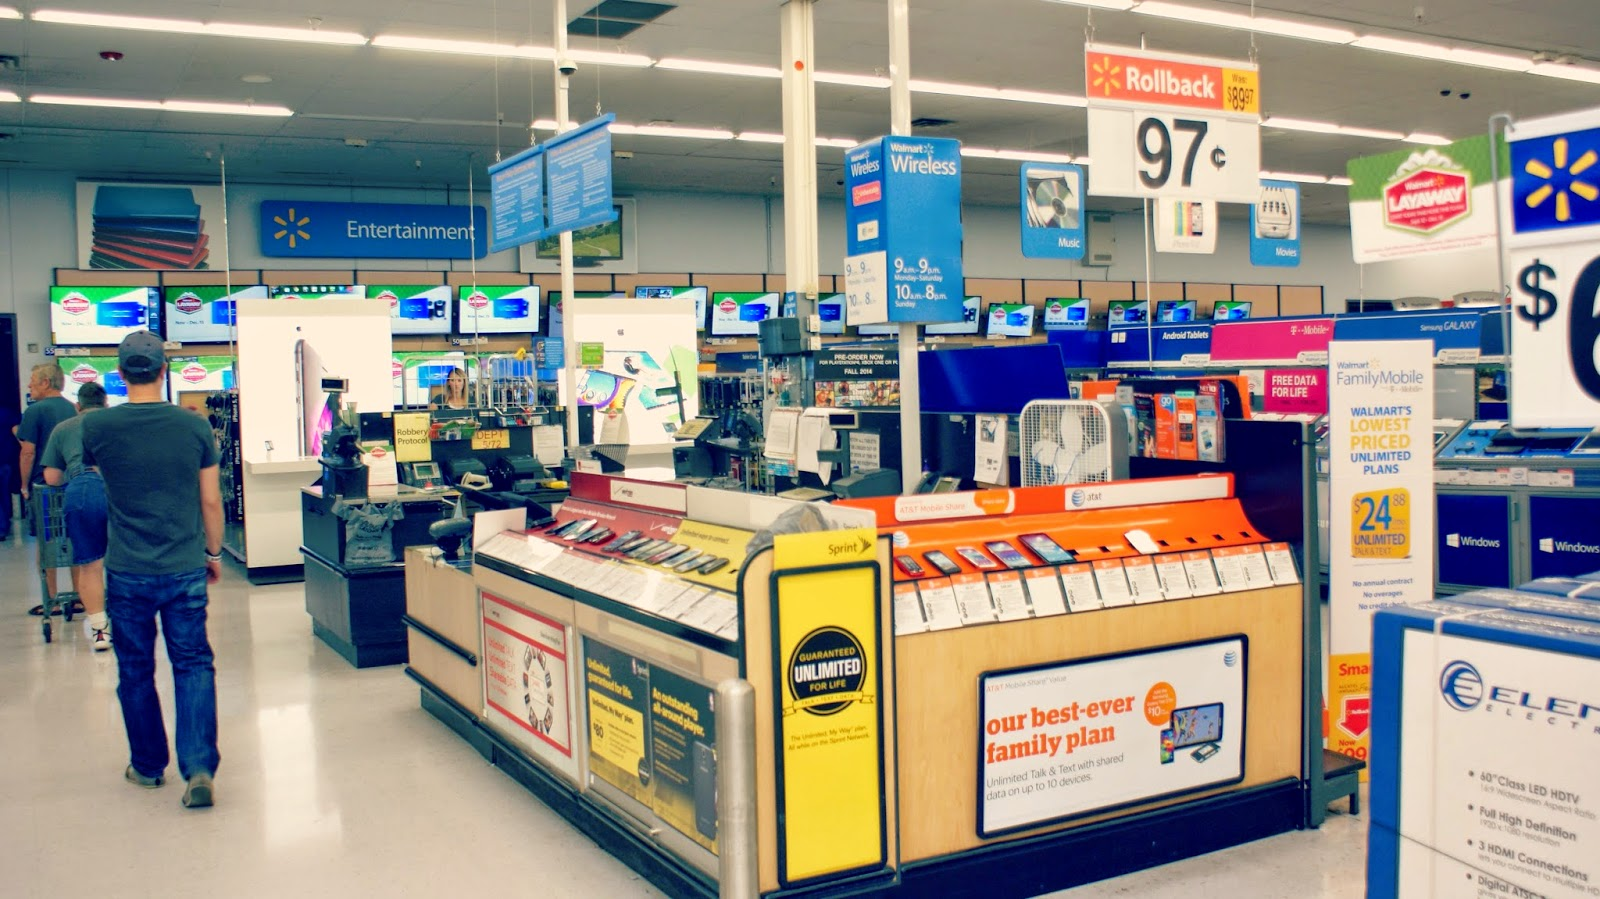 Cheapest Wireless Plans With Phones On Rollback At Walmart